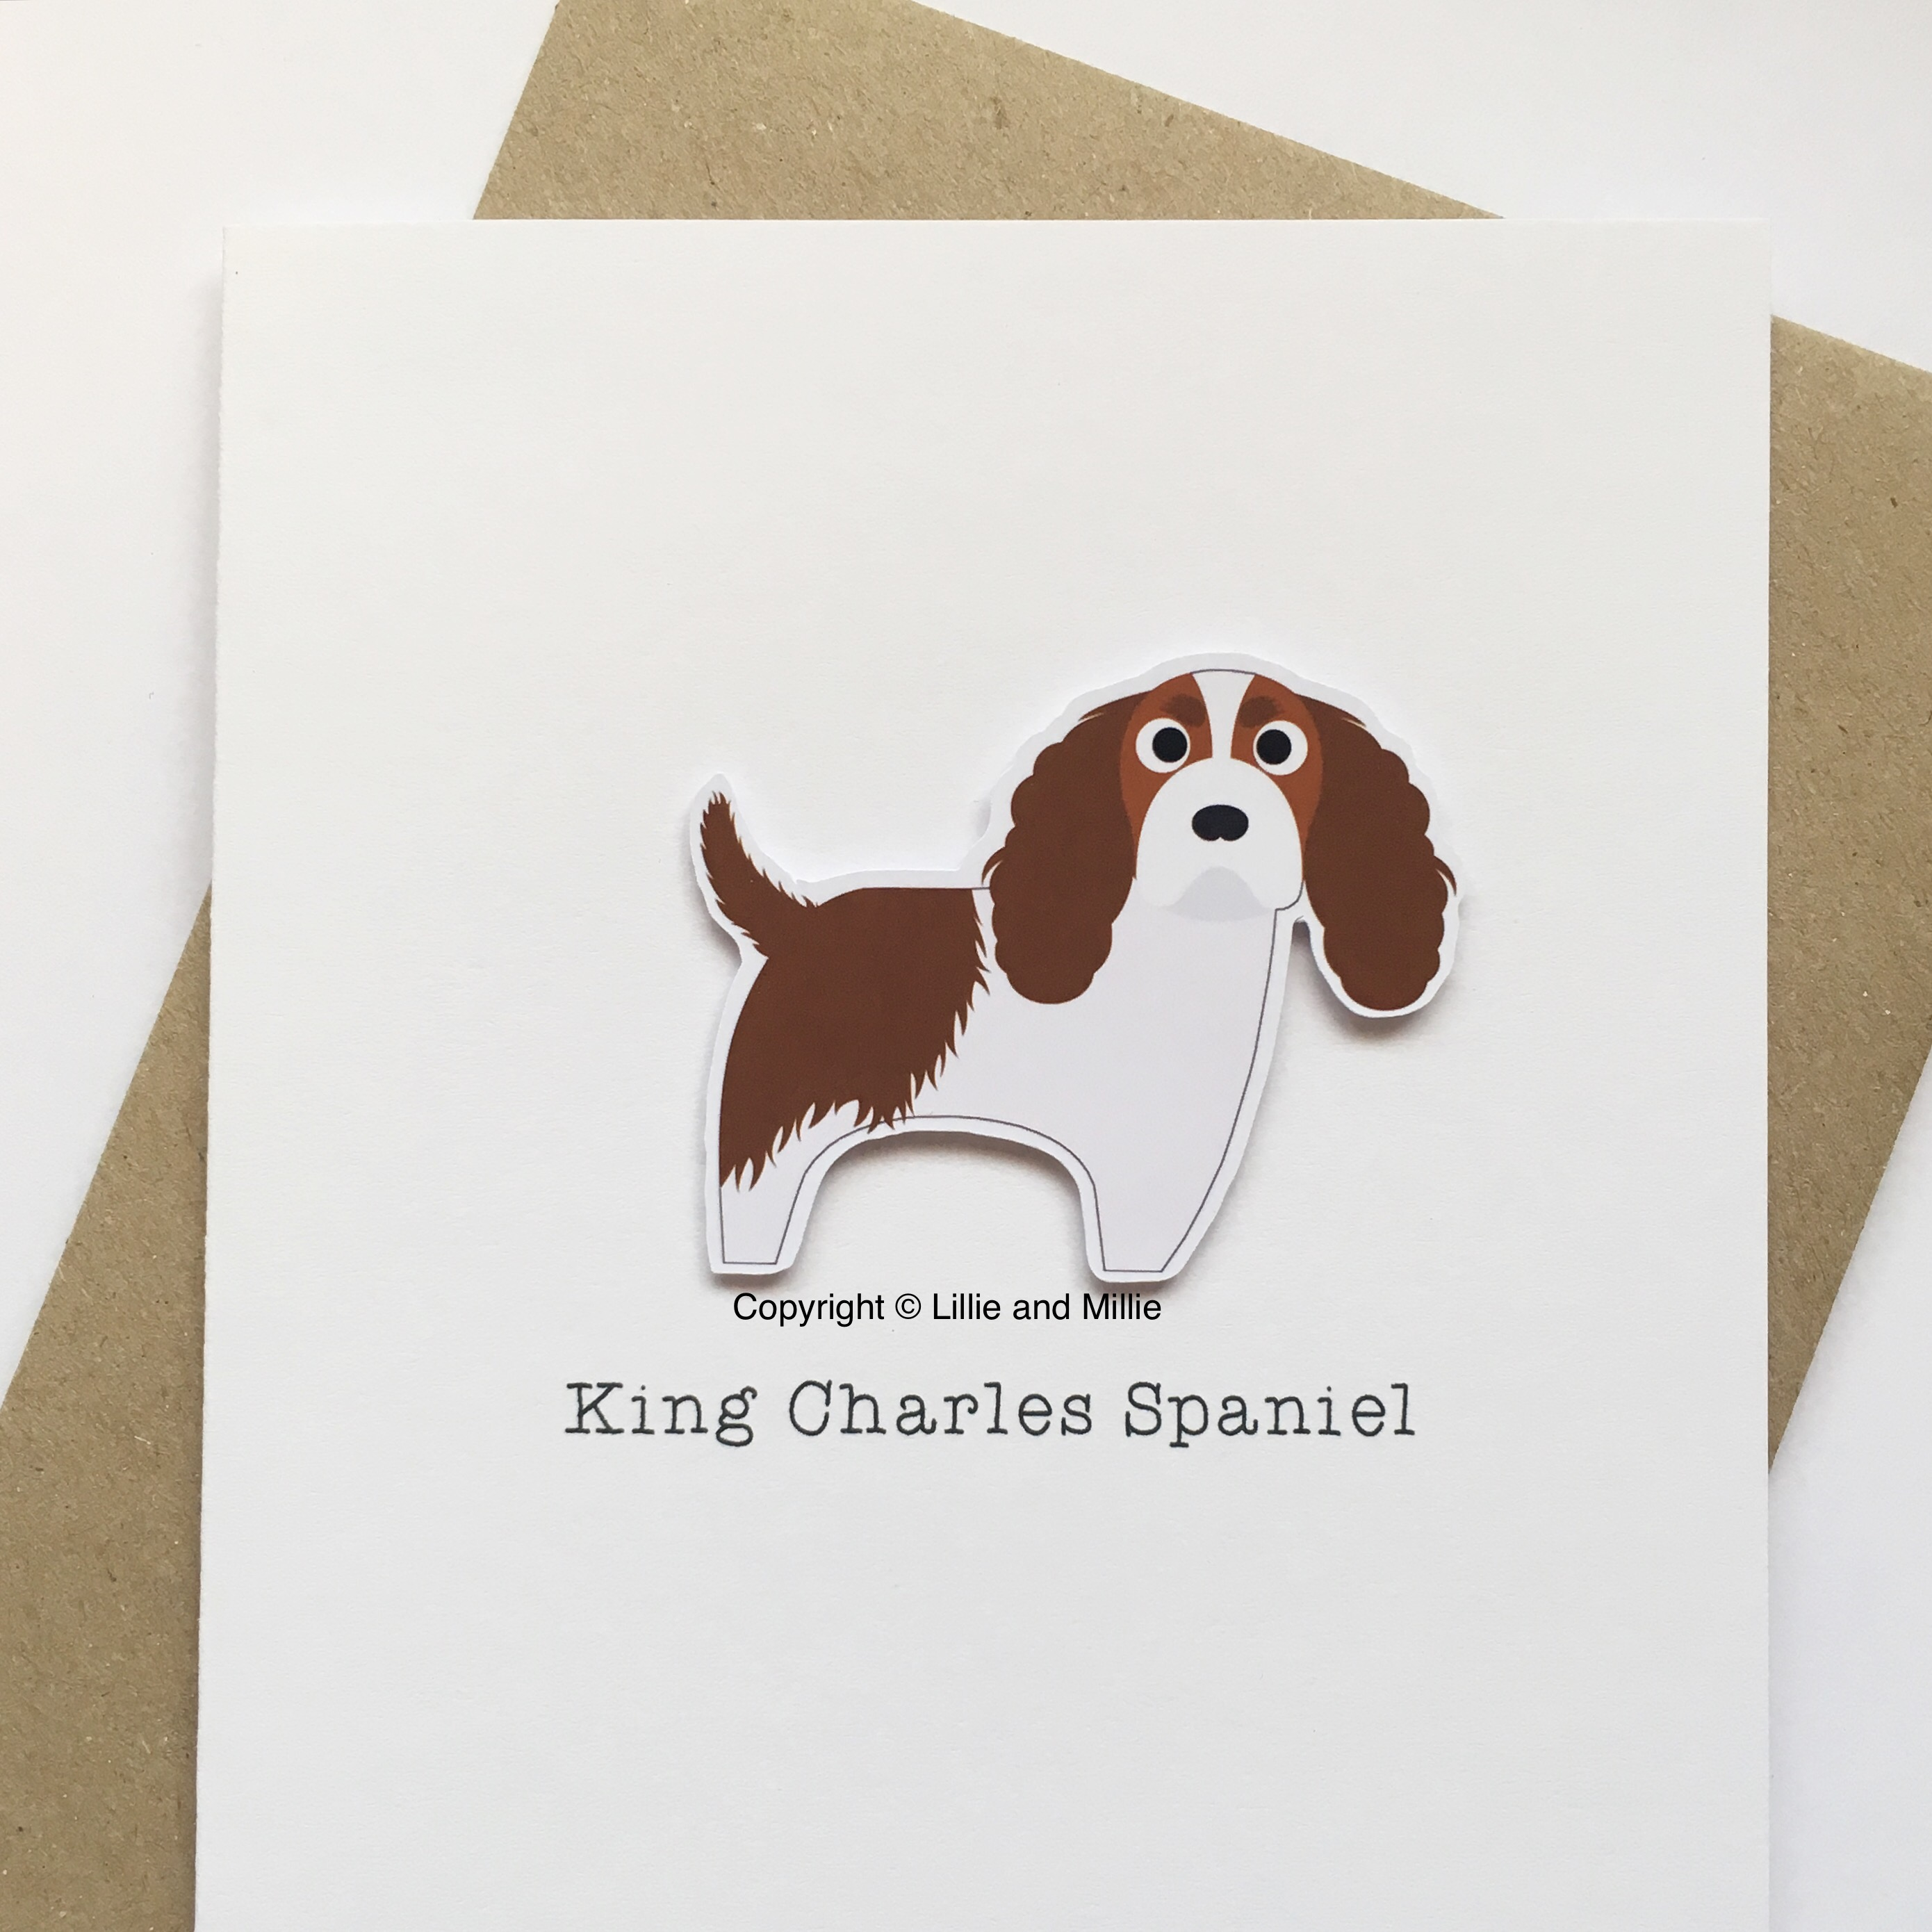 Cute and Cuddly Blenheim King Charles Spaniel Card